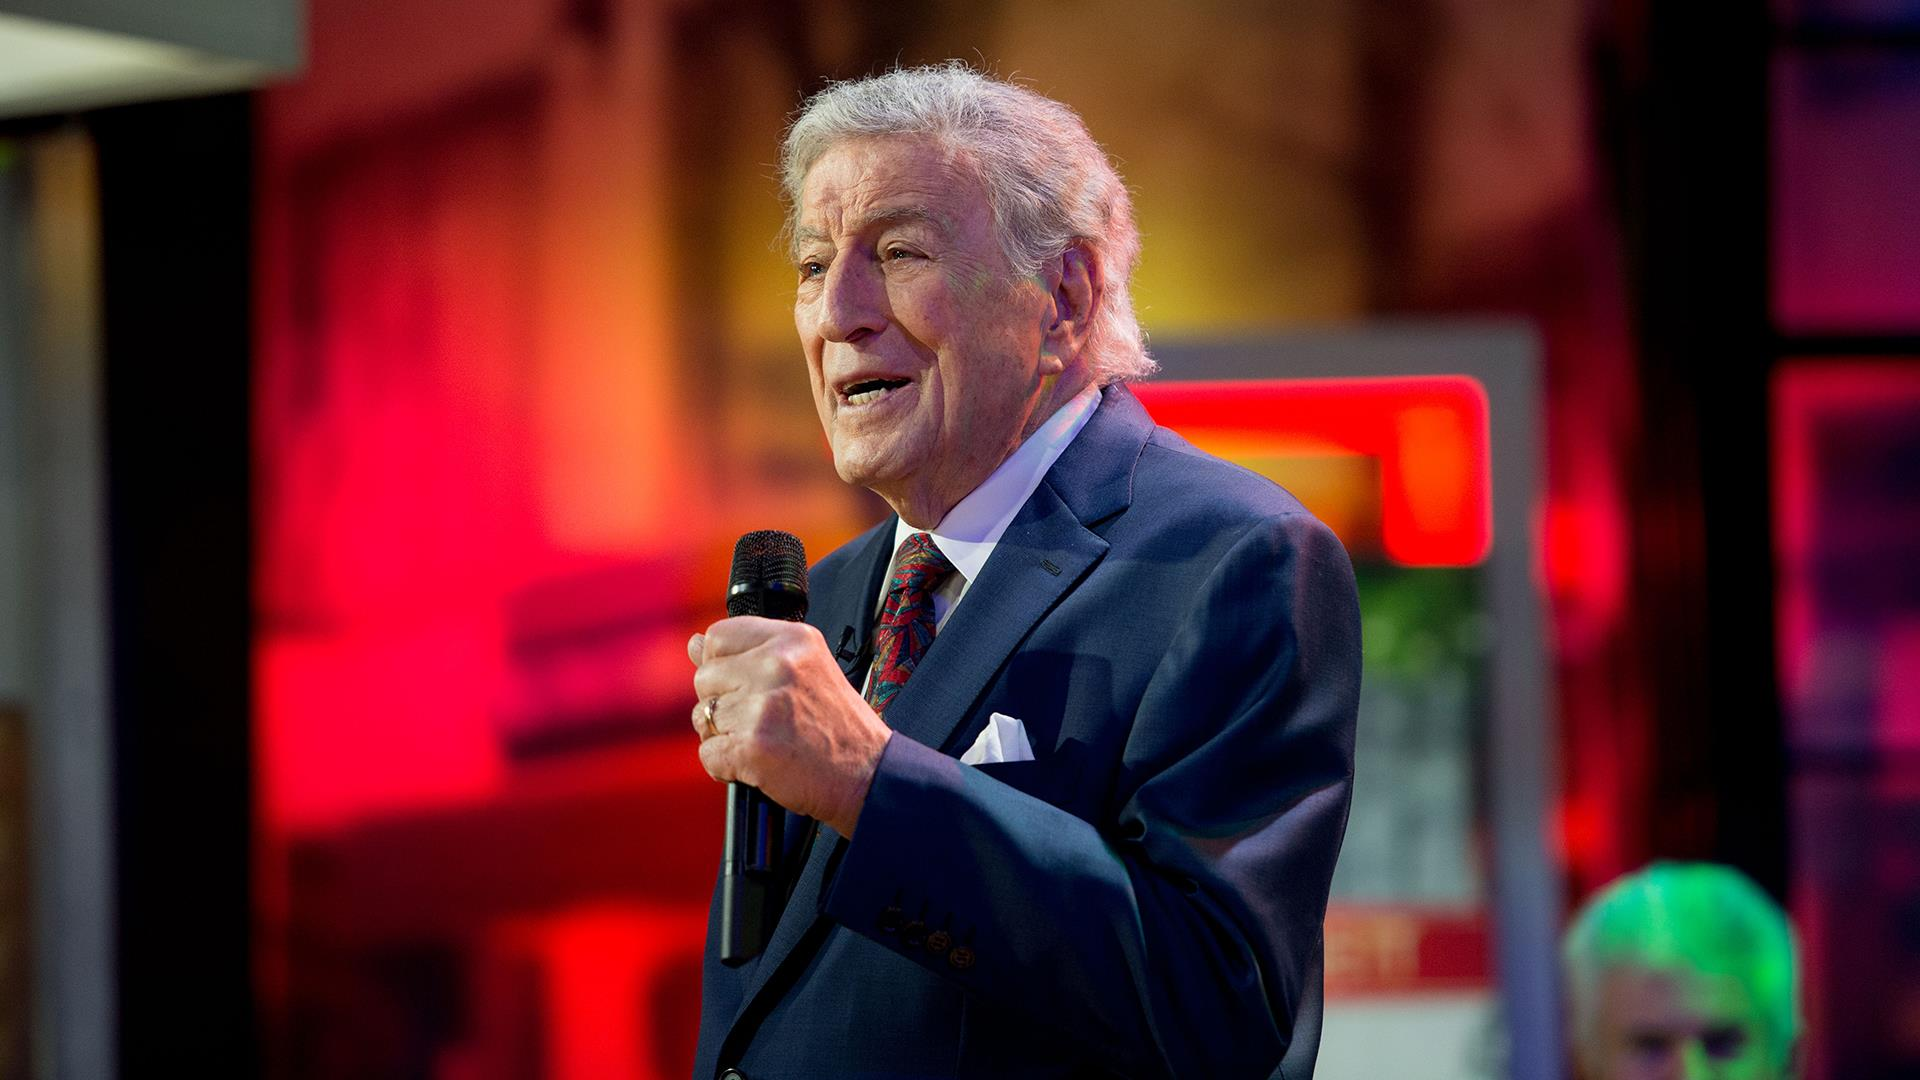 Watch Tony Bennett perform Ill Be Home for Christmas live on TODAY 1920x1080